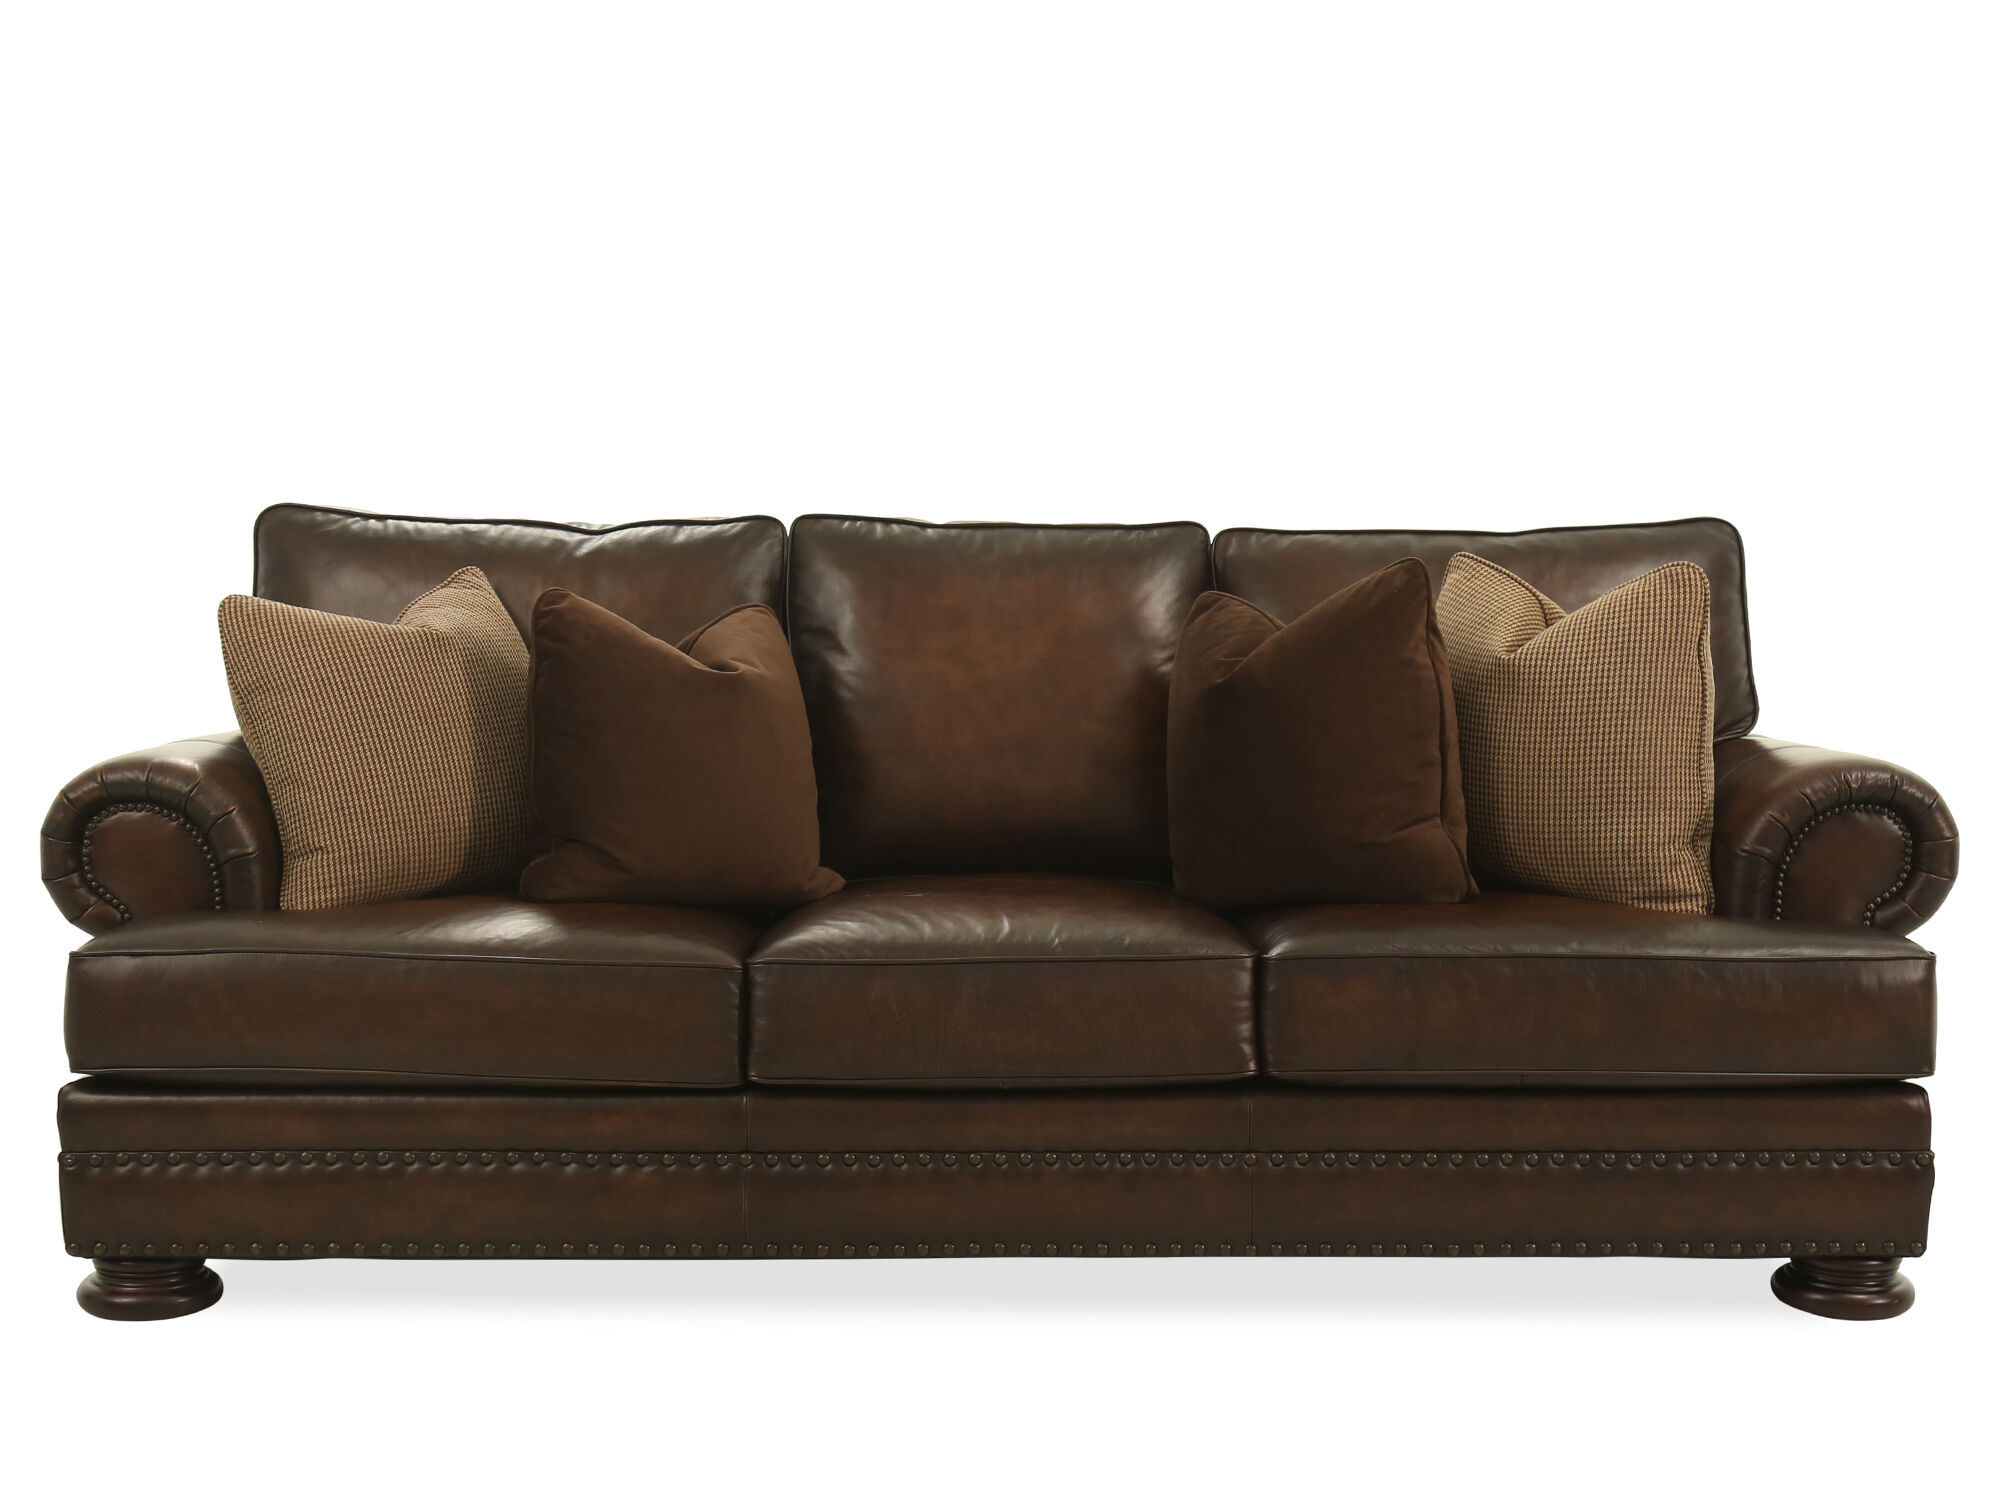 Charmant Images Leather Nailhead Accented 98u0026quot; Sofa In Brown Leather  Nailhead Accented 98u0026quot; Sofa In Brown